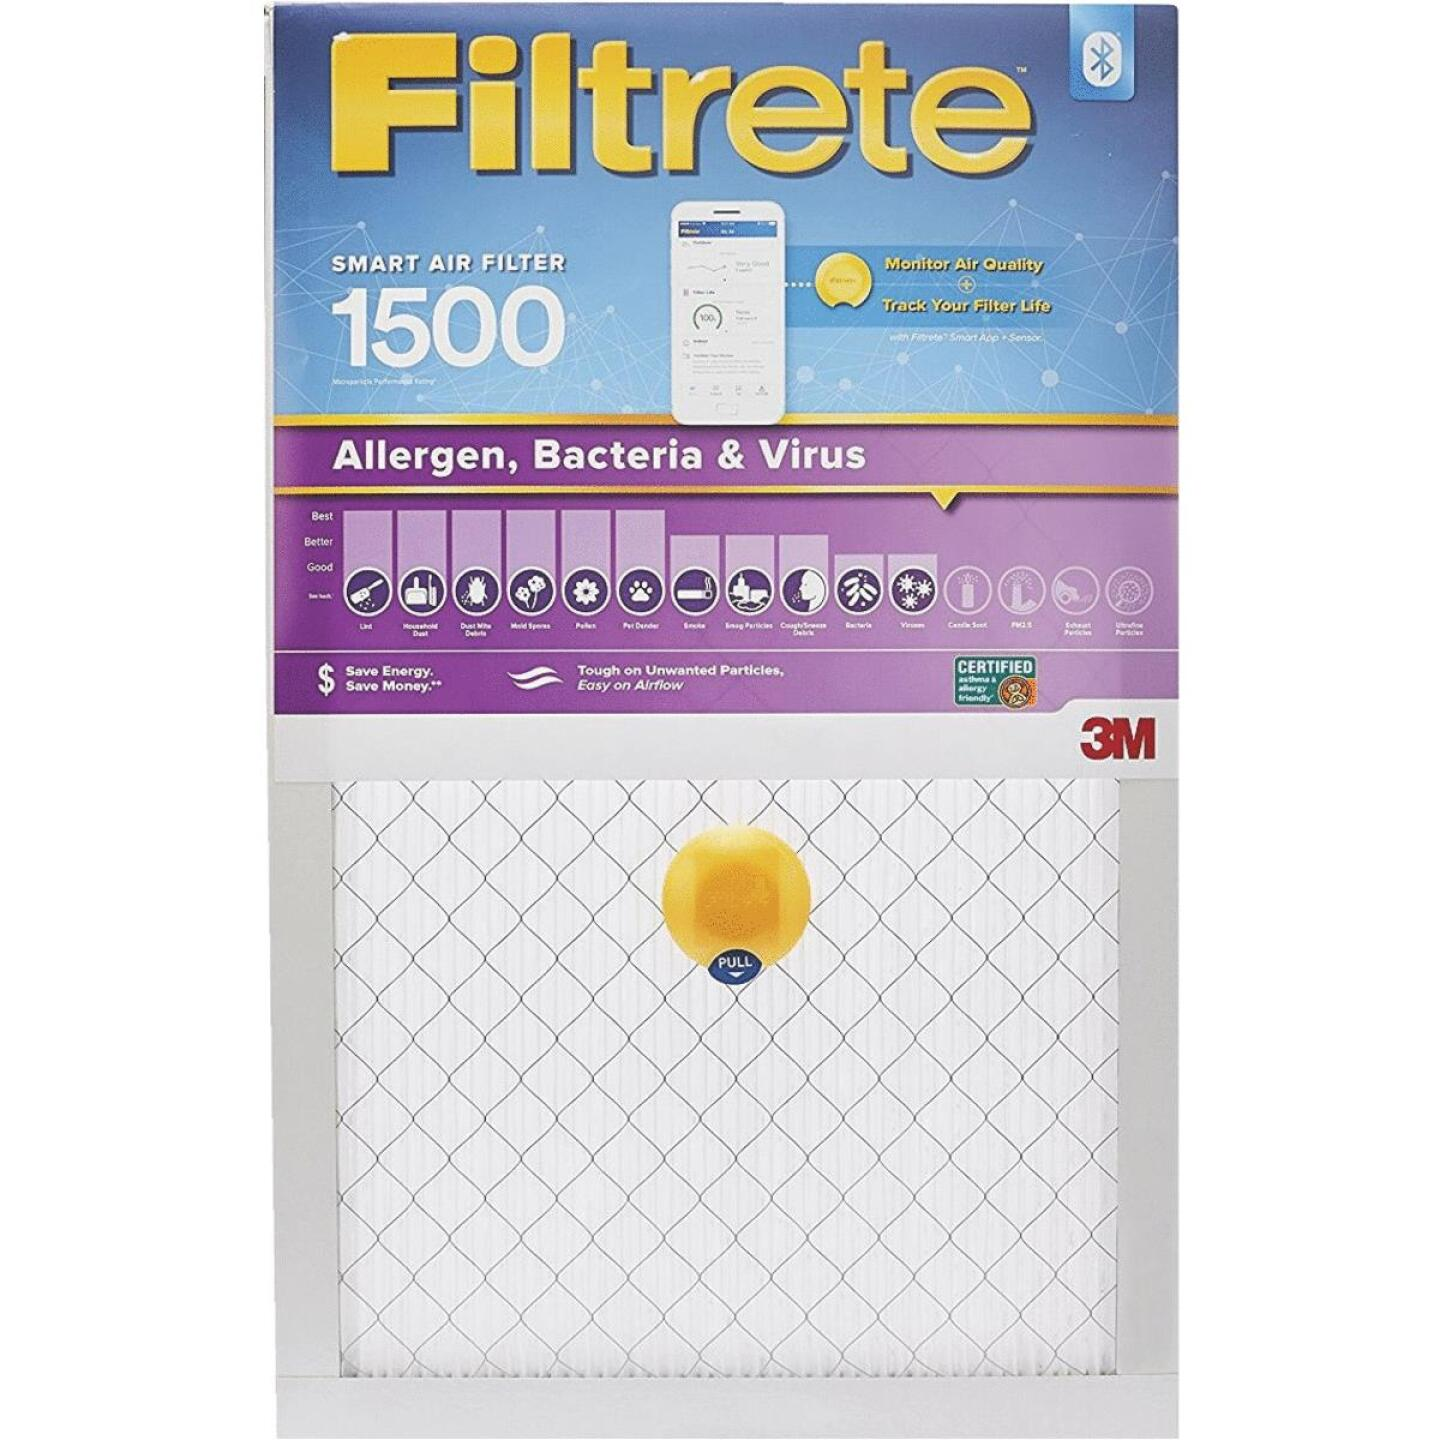 3M Filtrete 16 In. x 25 In. x 1 In. 1500 MPR Allergen, Bacteria & Virus Smart Furnace Filter Image 1